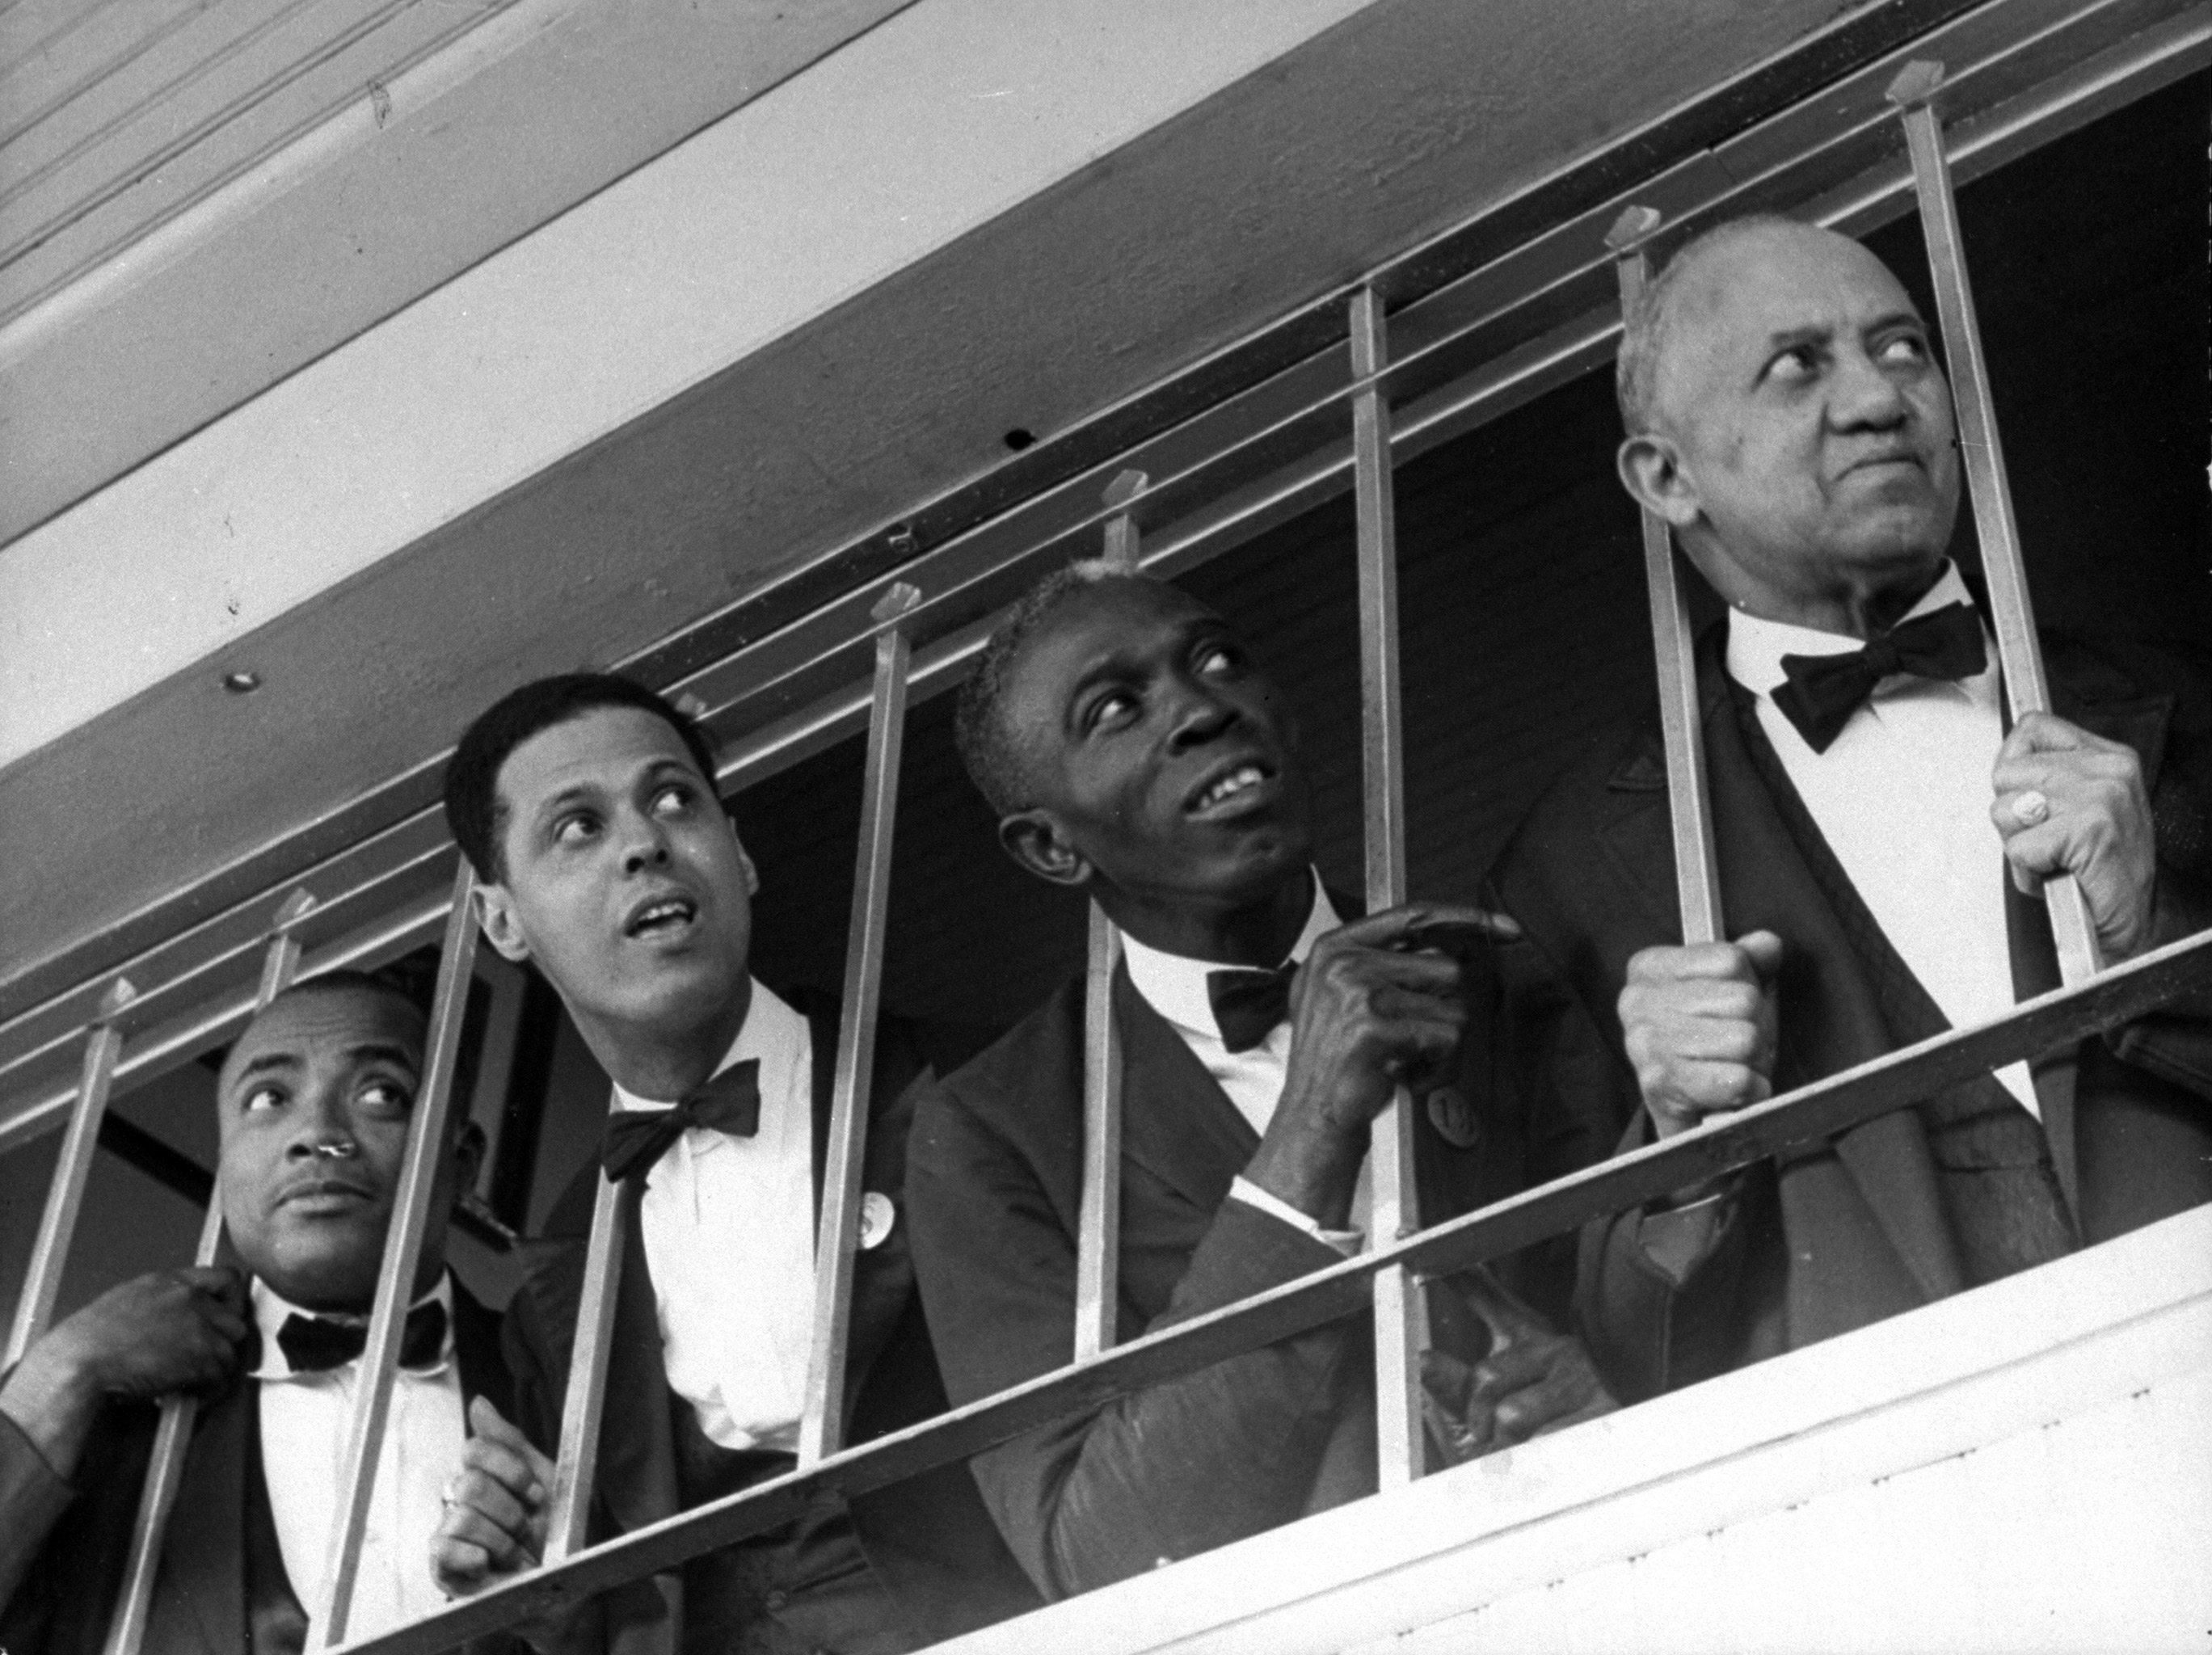 Caption from LIFE. The black quartet shown consists of Churchill Downs Bar waiters. The bar overlooks the track and no Bourbon-and-soda orders whatever are filled when the Derby horses are coming down the stretch.